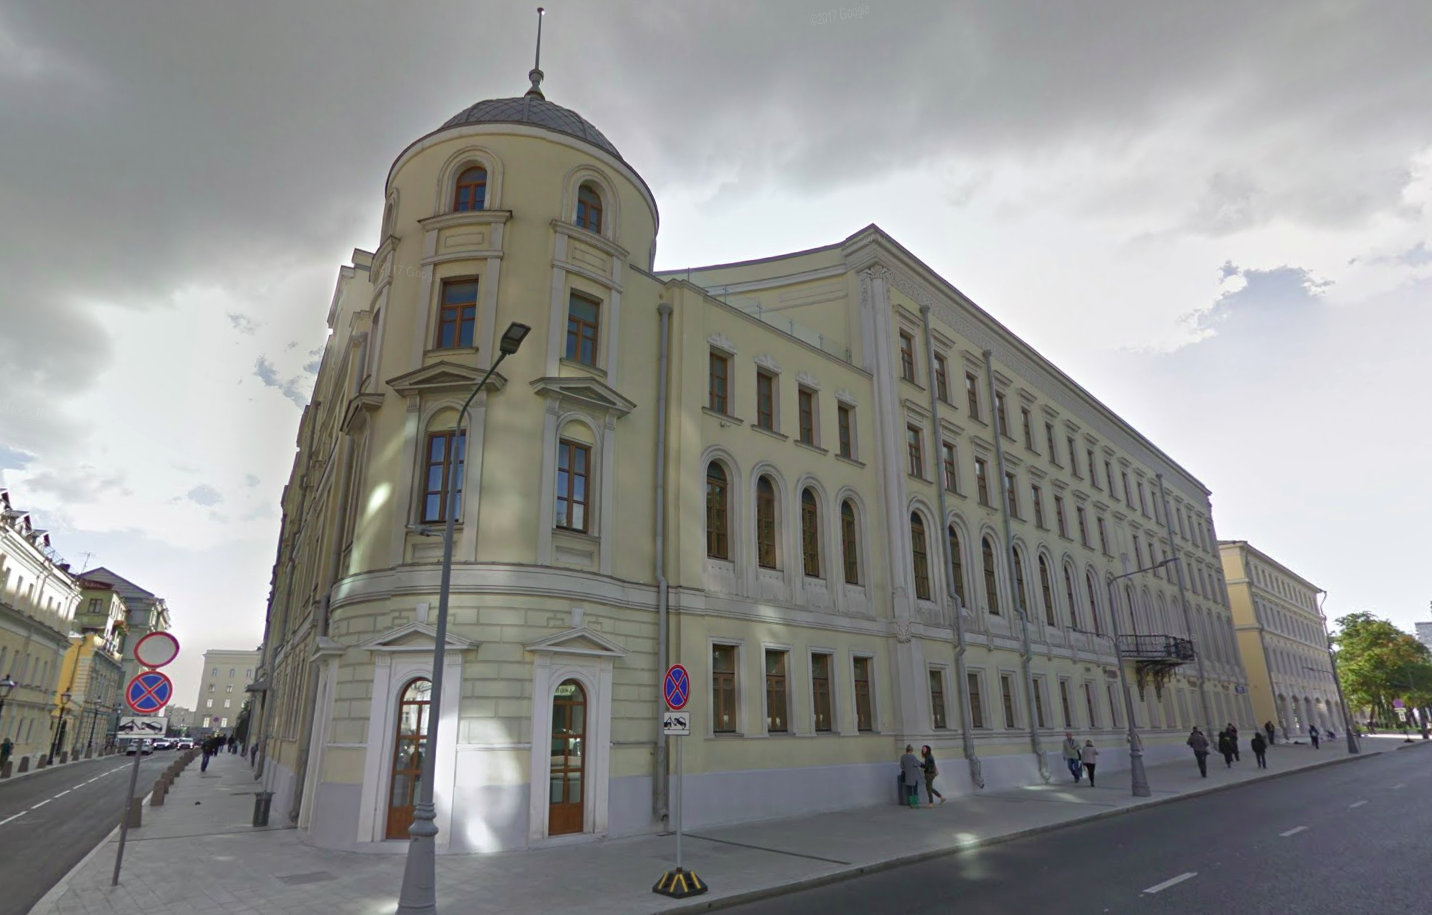 A historic mansion on Moscow's Vozdvizhenka Street belonging to the Center for the Development of Interpersonal Communication. Credit: Google Street View